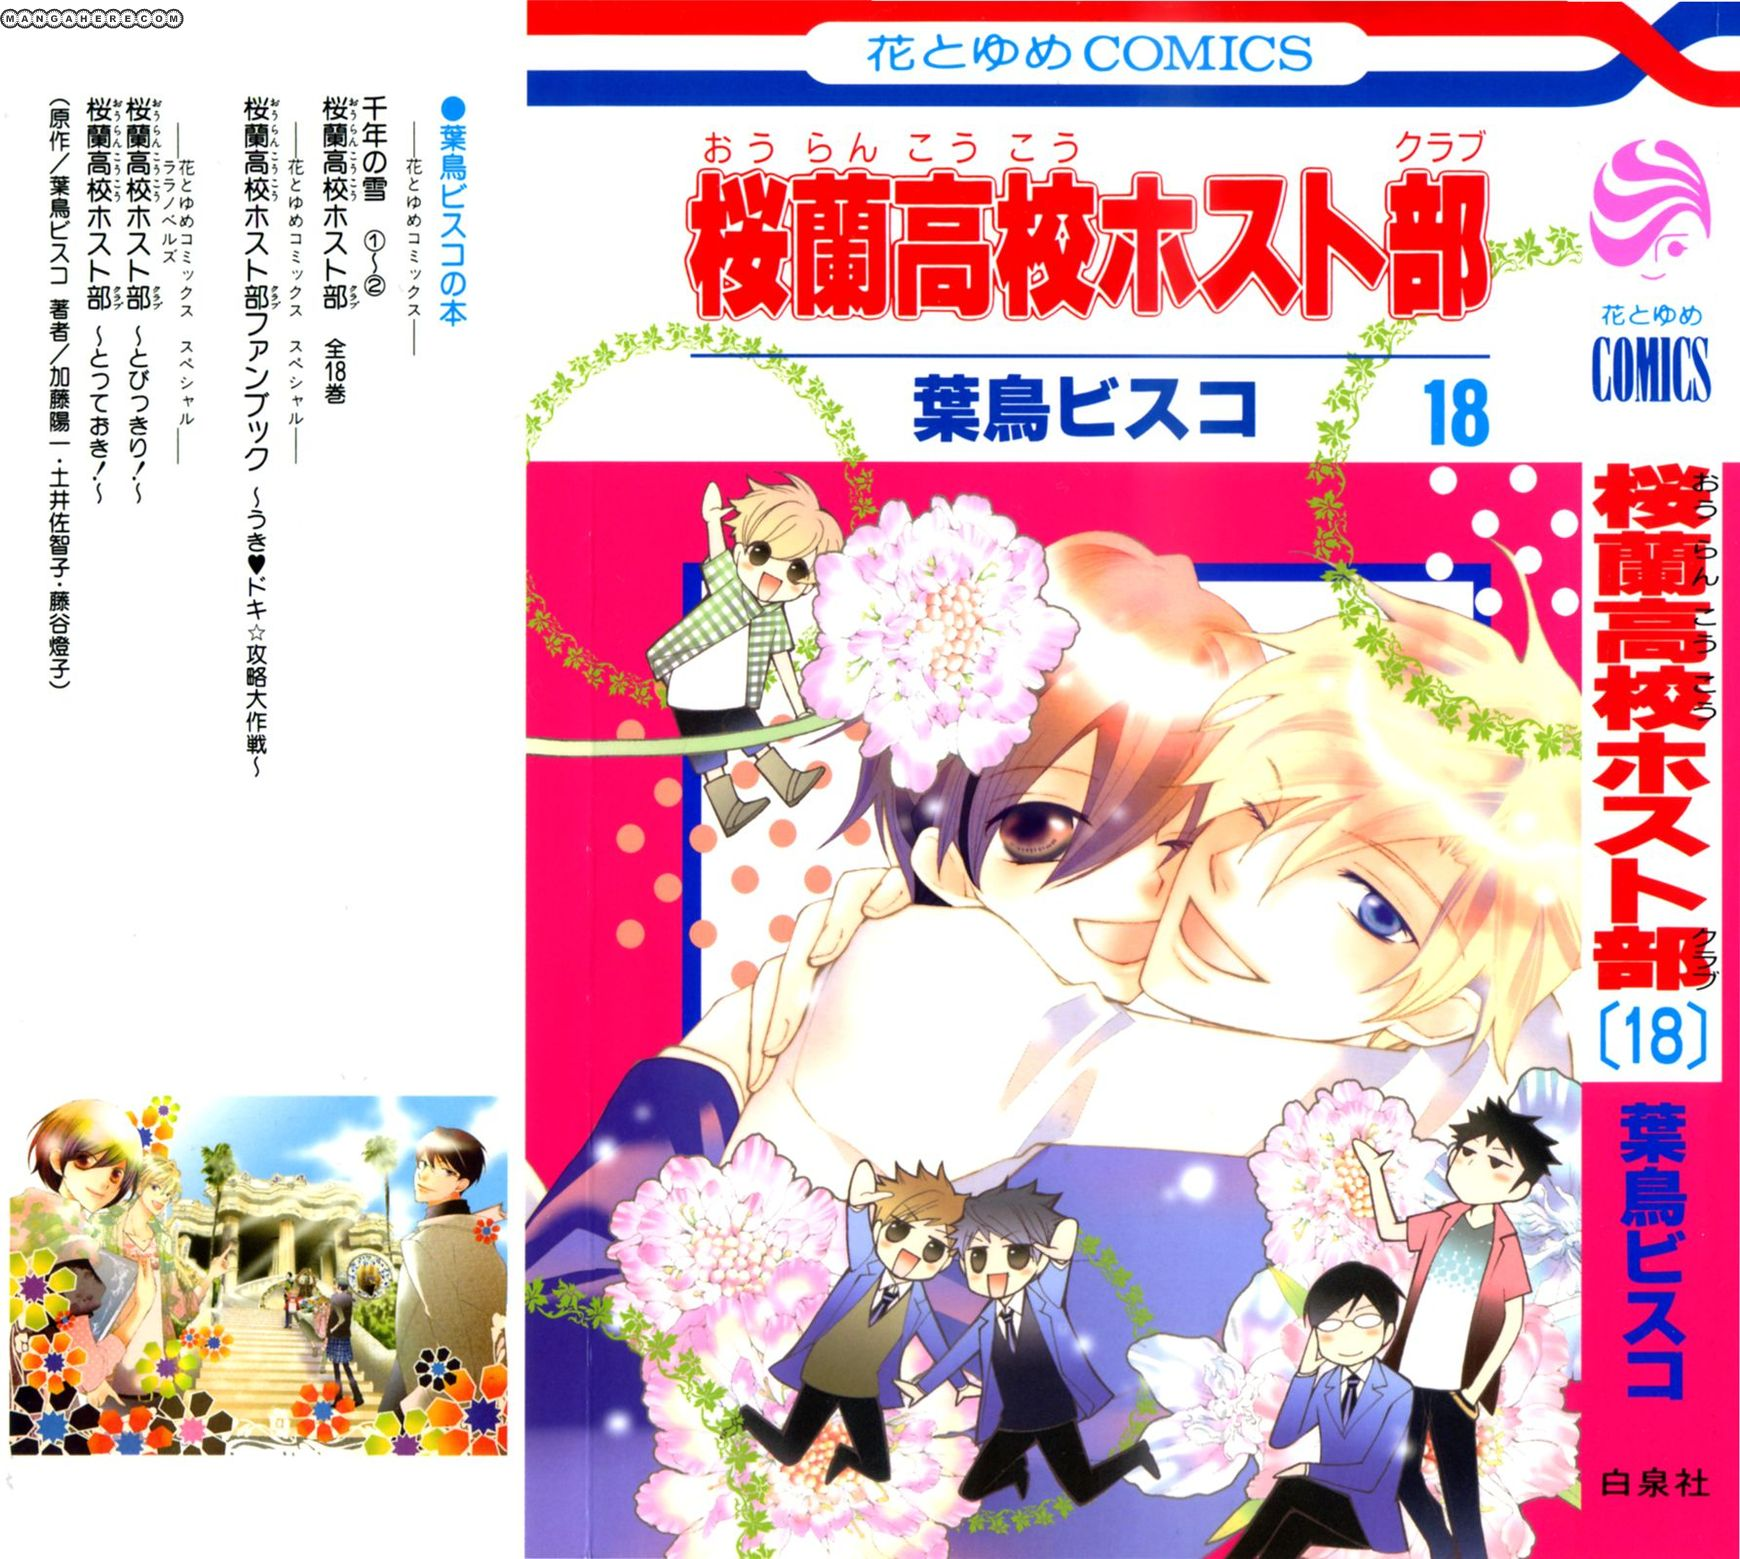 Ouran High School Host Club 81 Page 3